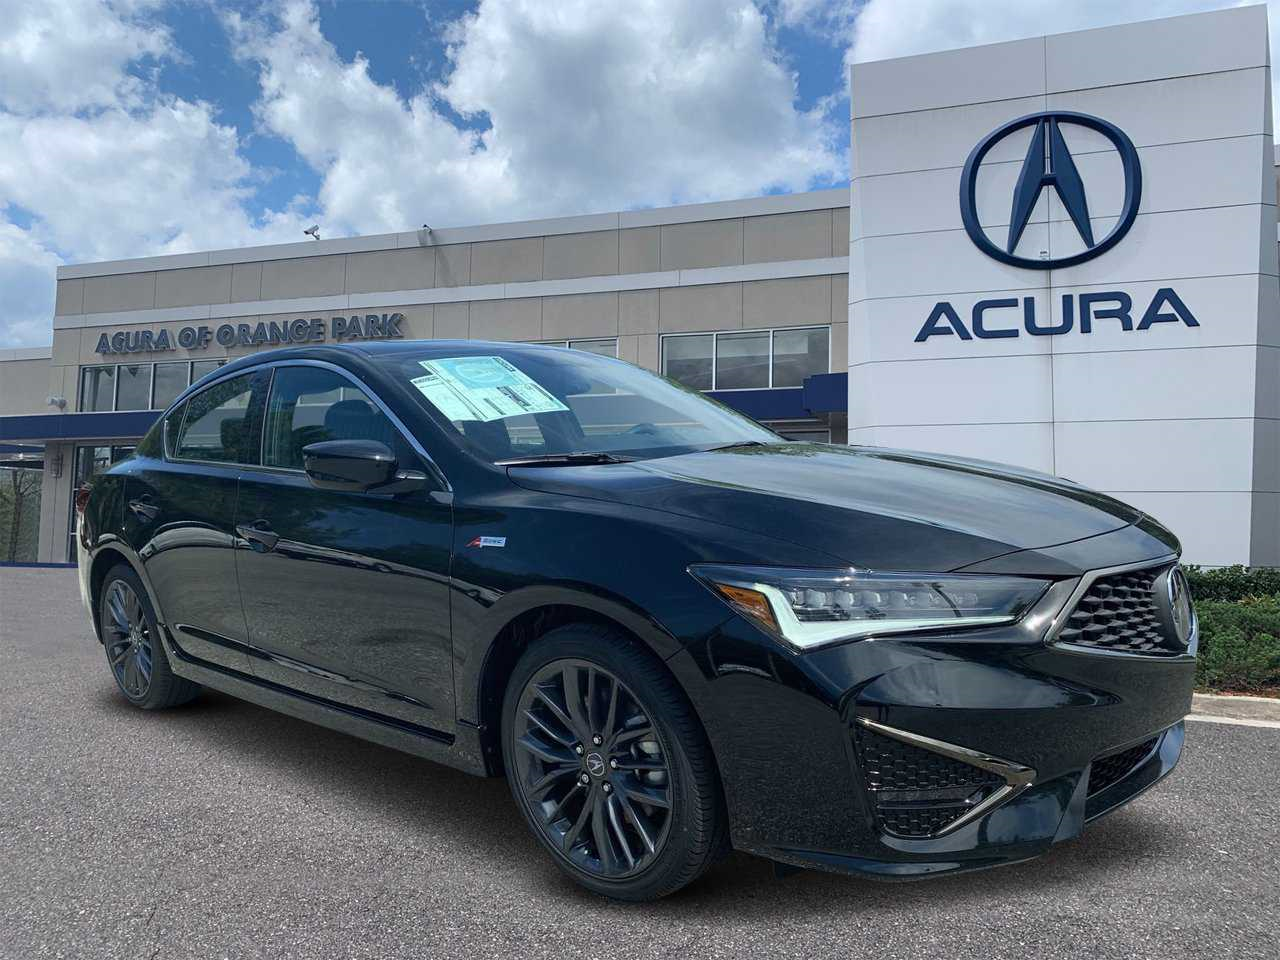 2019 Acura Ilx 31045 00 For Sale In Jacksonville Fl 32244 Buy Used Cars 2013 Ford Explorer Ford Explorer